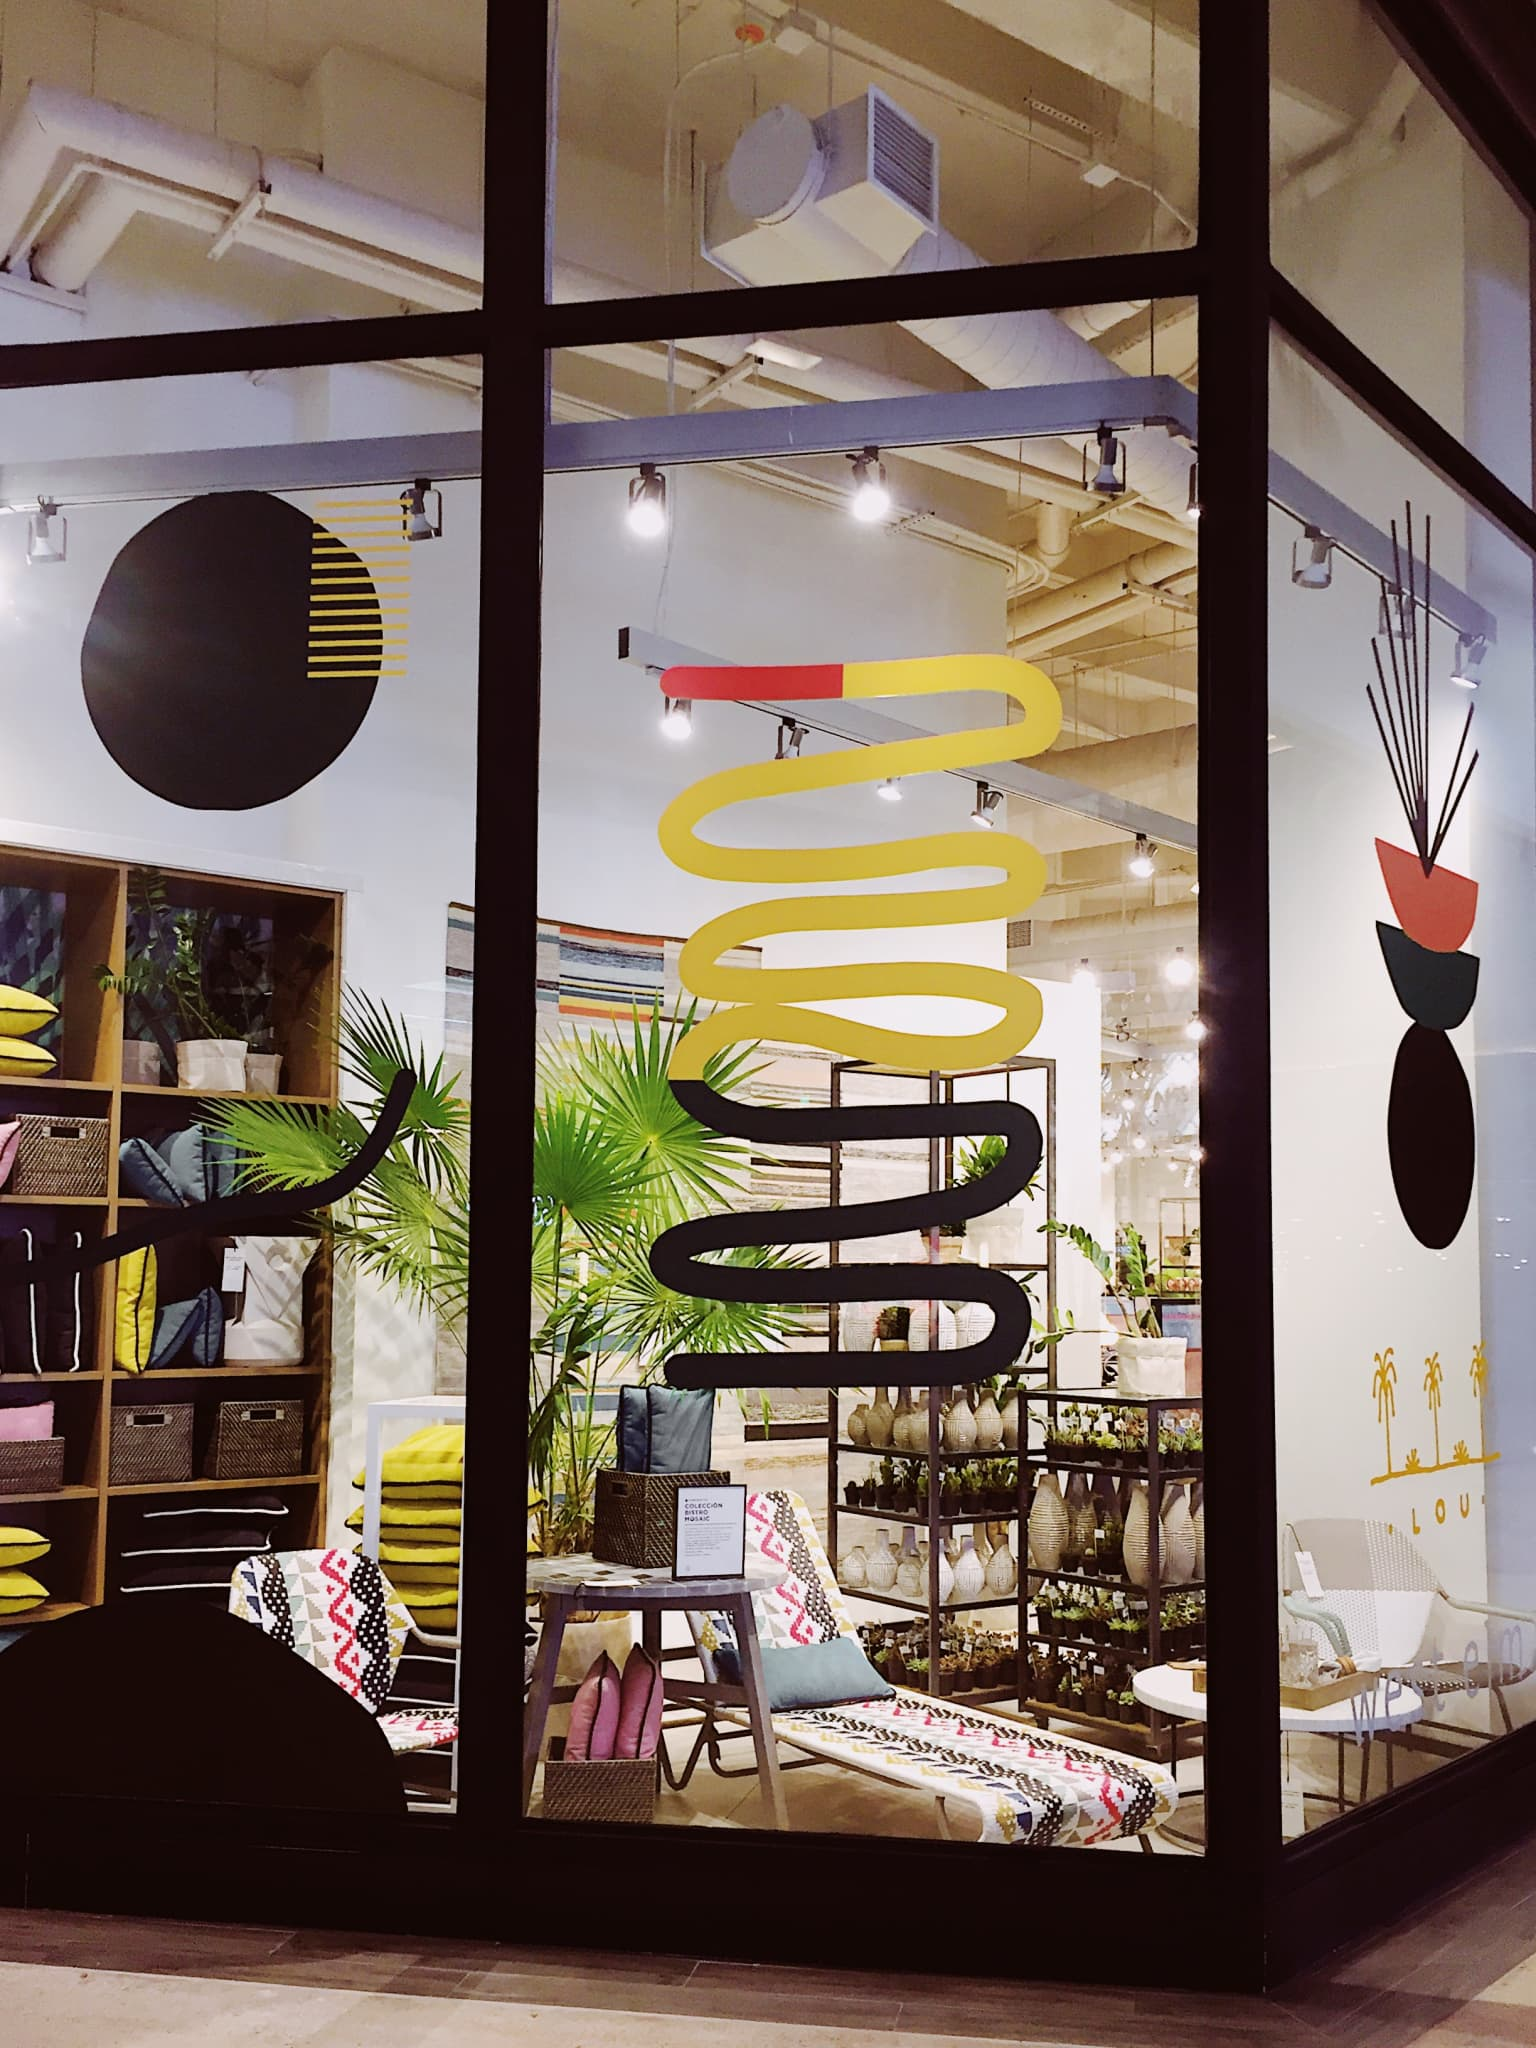 West Elm Cancún Art Installation & Live Painting